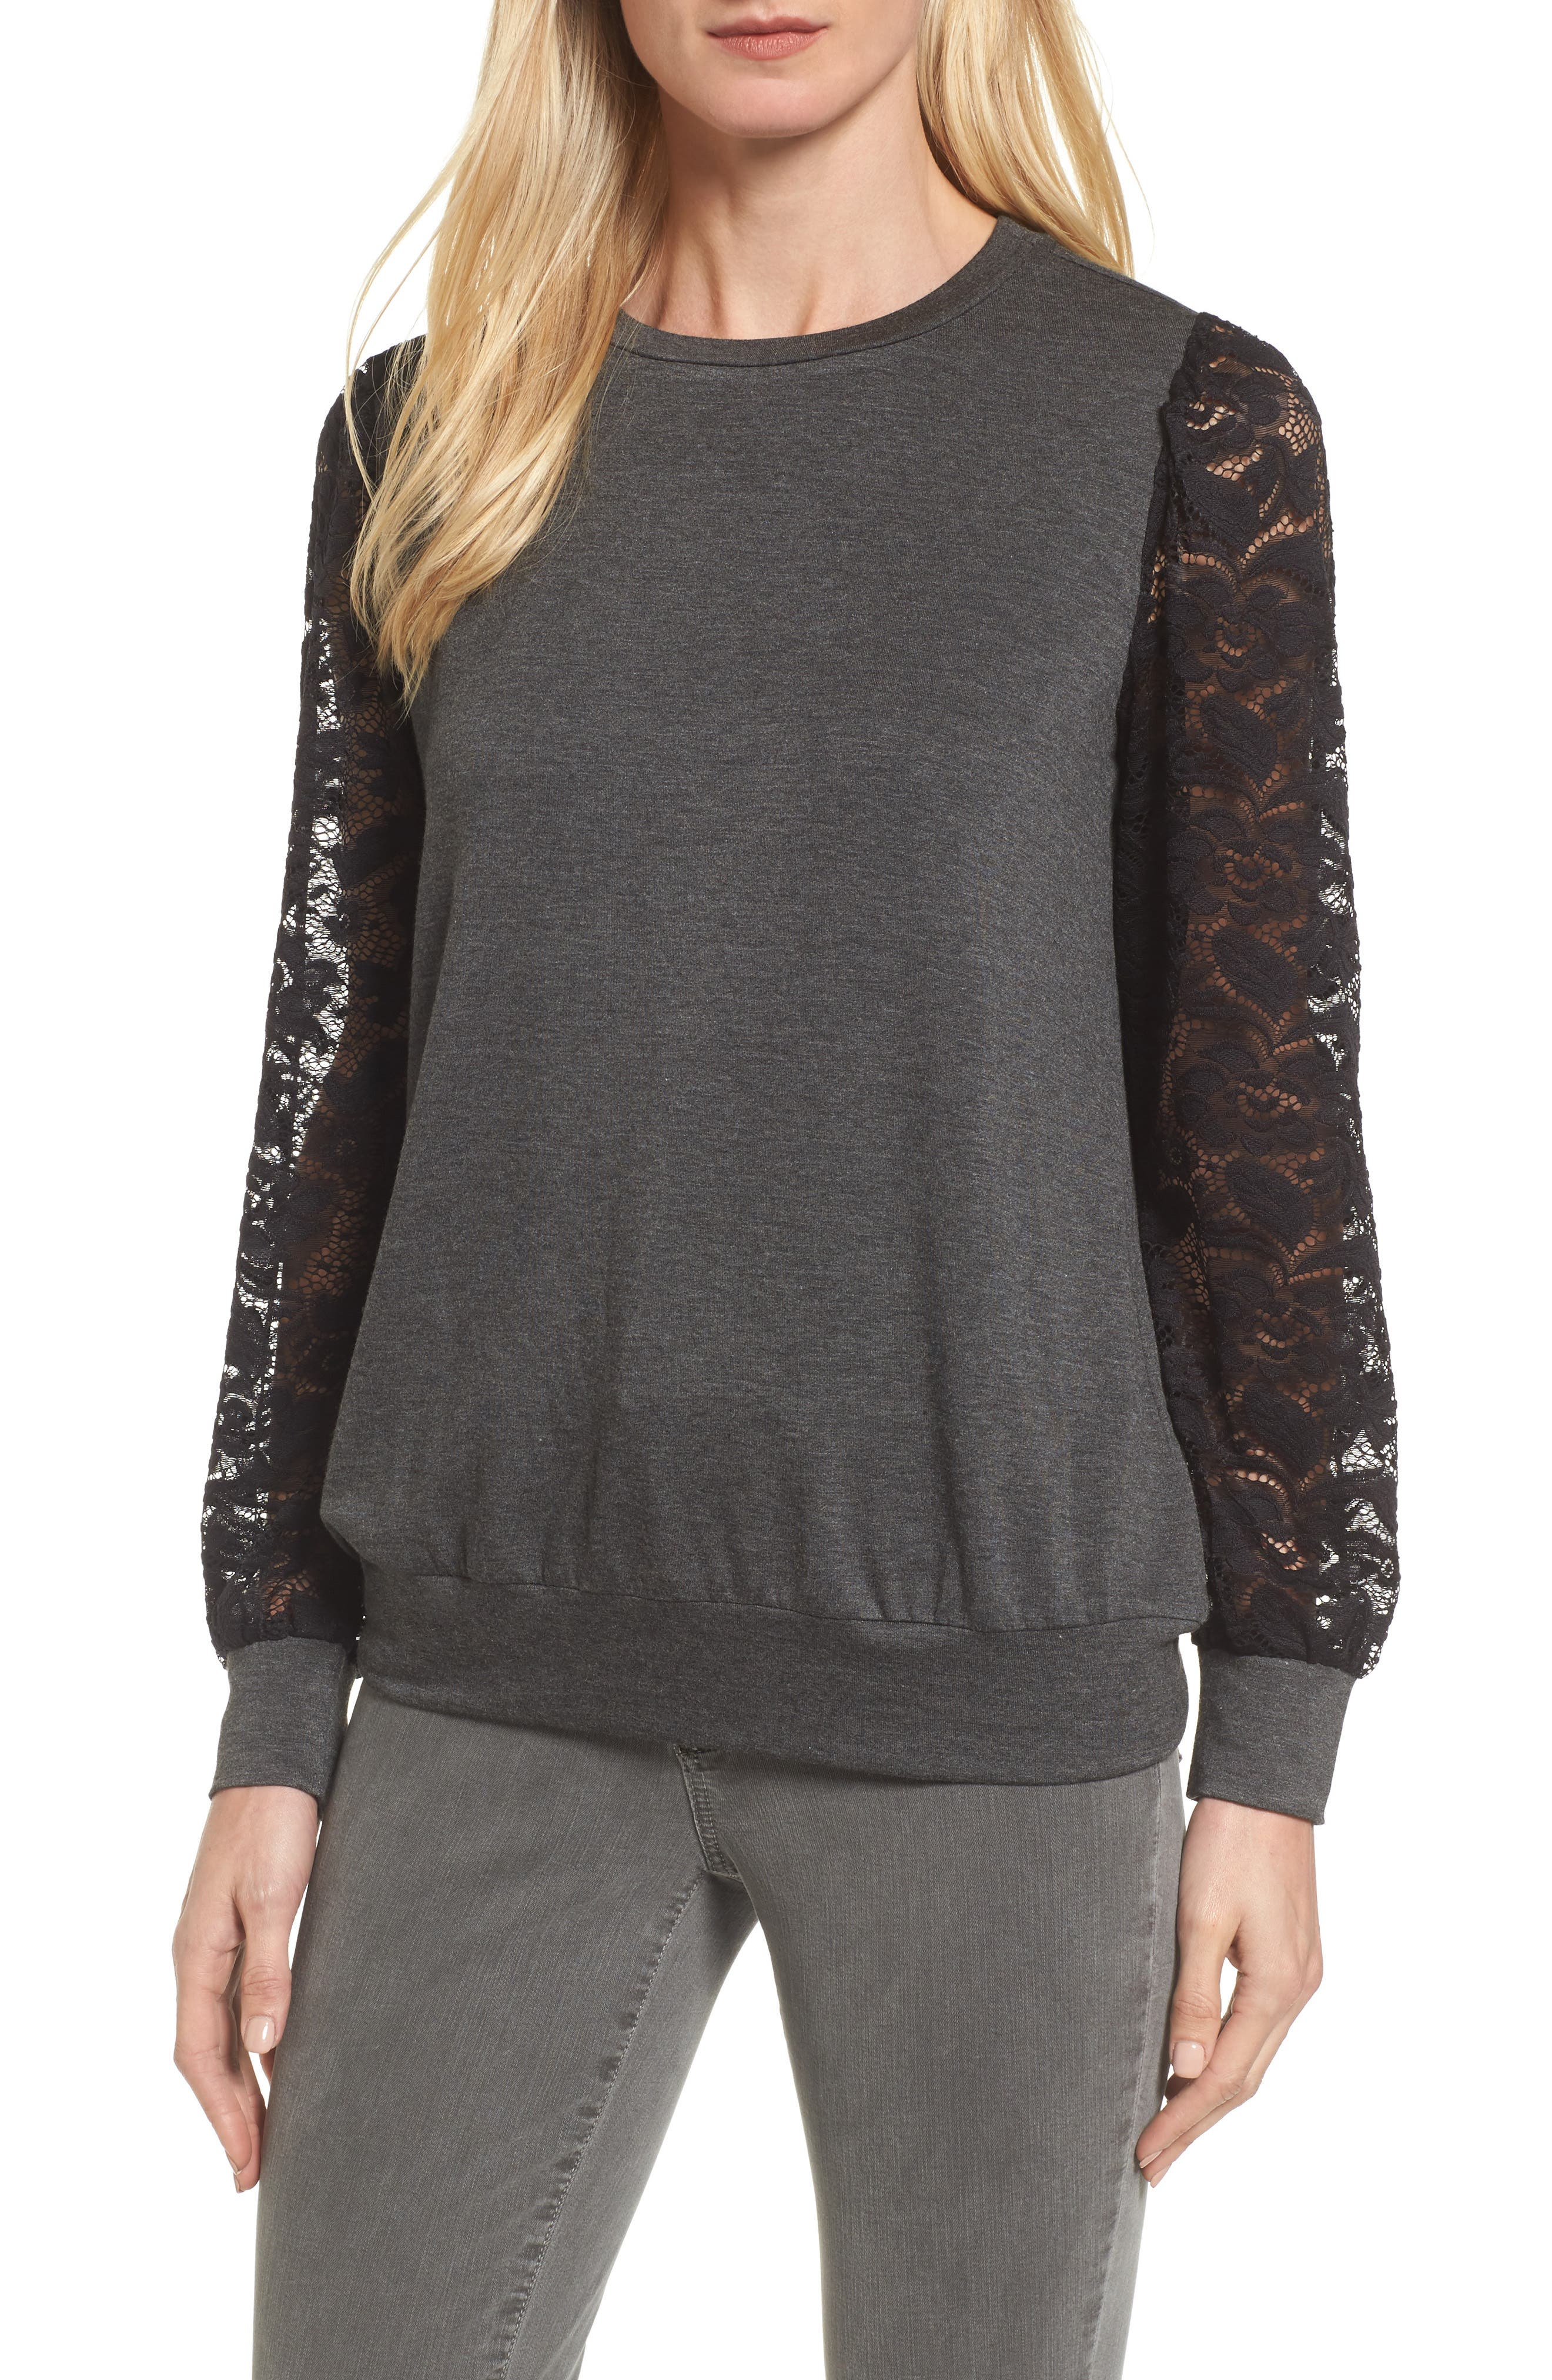 Lace Sleeve Sweatshirt,                             Main thumbnail 1, color,                             Dark Charcoal